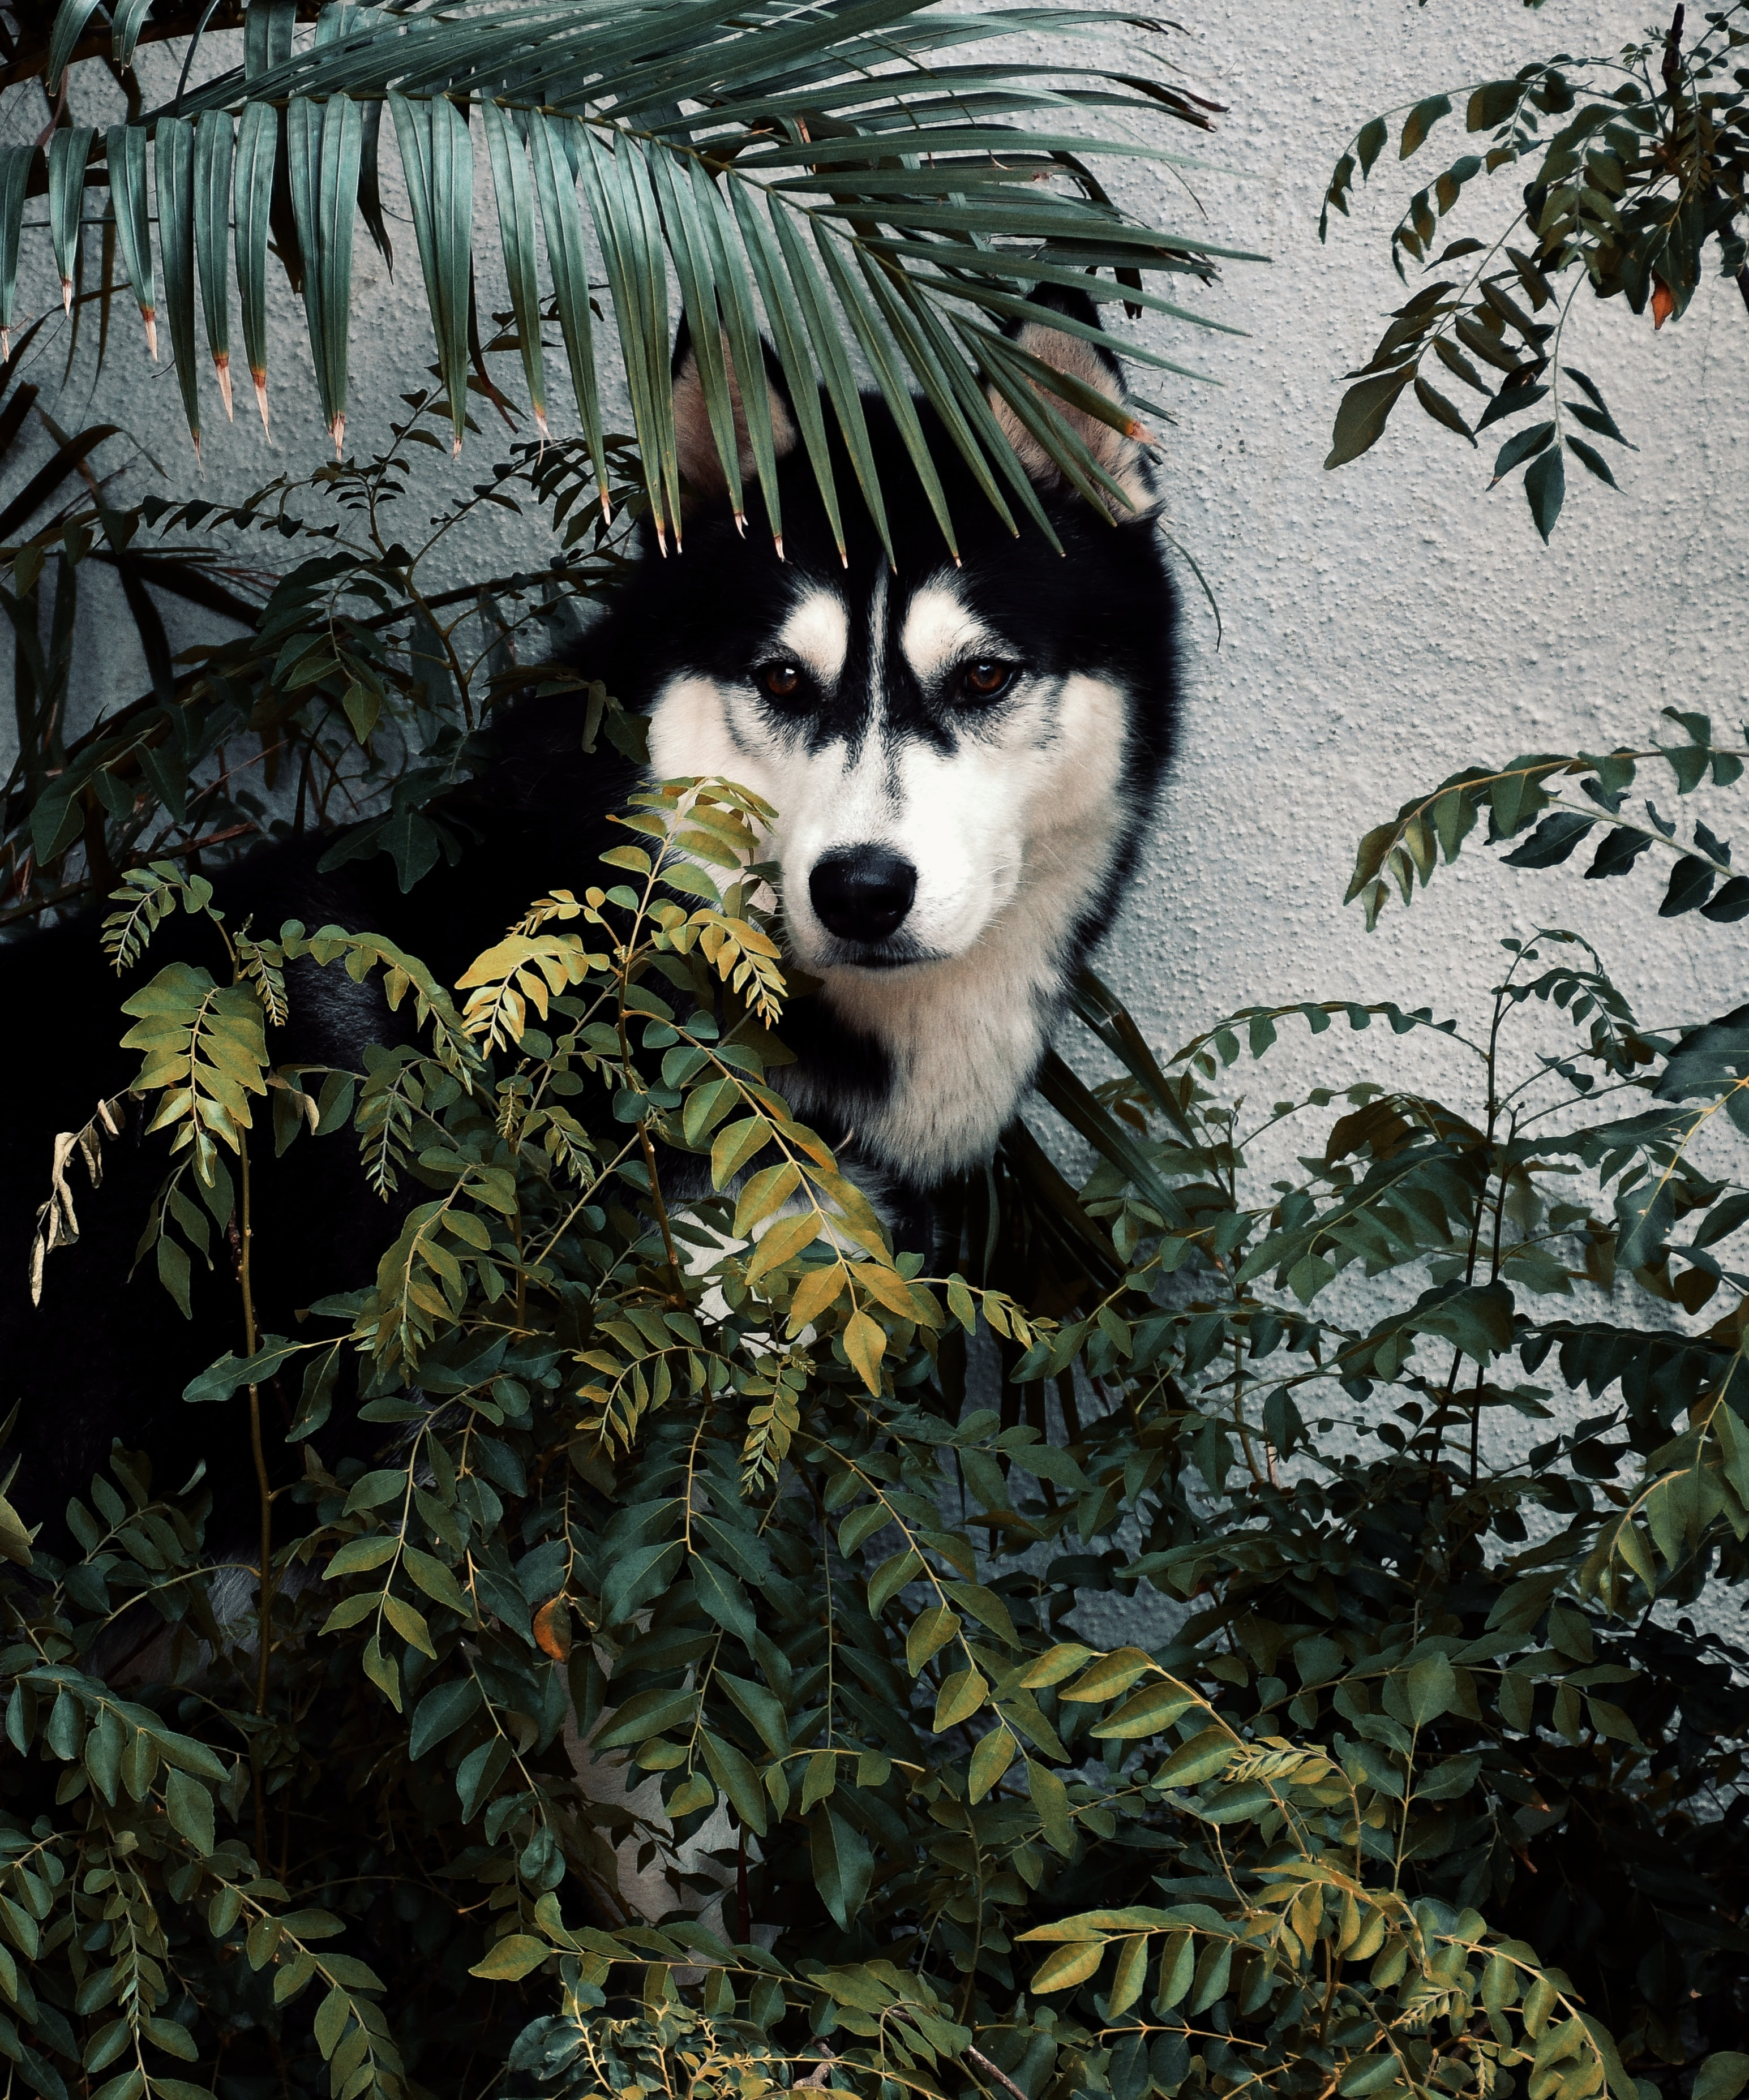 54323 download wallpaper Animals, Husky, Dog, Pet, Bush screensavers and pictures for free